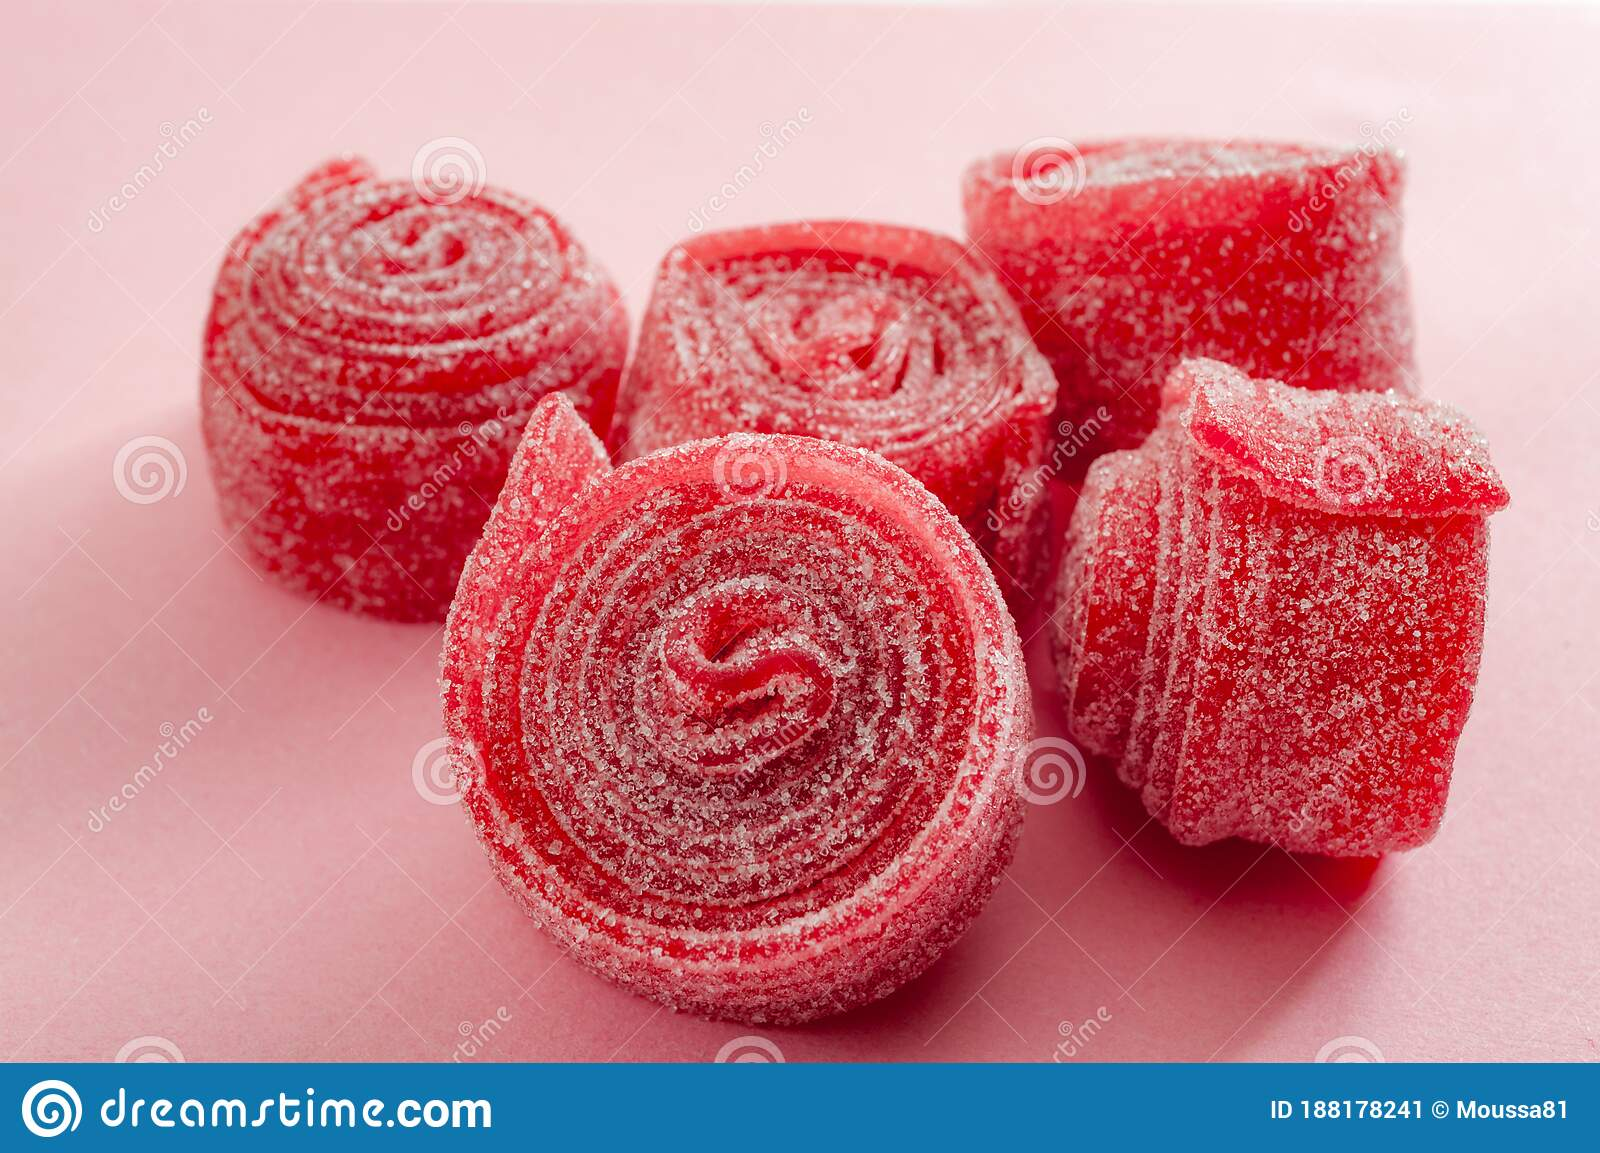 Chewy Sweets And Strawberry And Cherry Flavoured Gummy Candy Concept With Close Up On Sweet And Sour Red Sour Belts Covered In Stock Image Image Of Belts Rolls 188178241